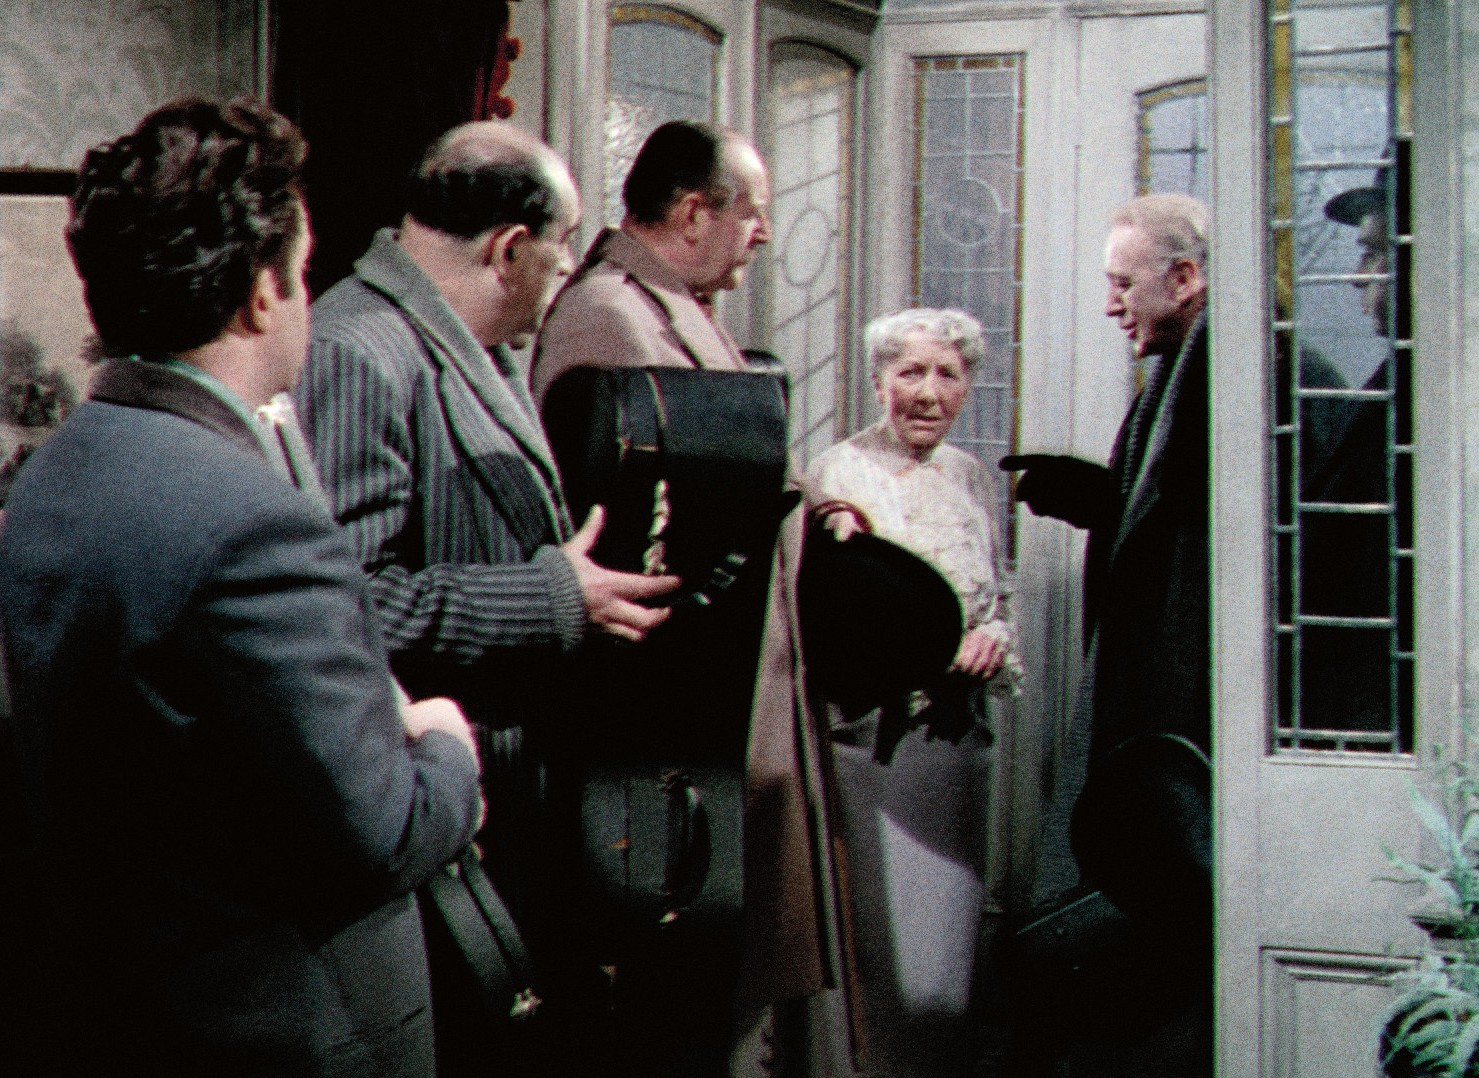 Still of Alec Guinness, Peter Sellers, Herbert Lom, Danny Green, Katie Johnson and Cecil Parker in The Ladykillers (1955)